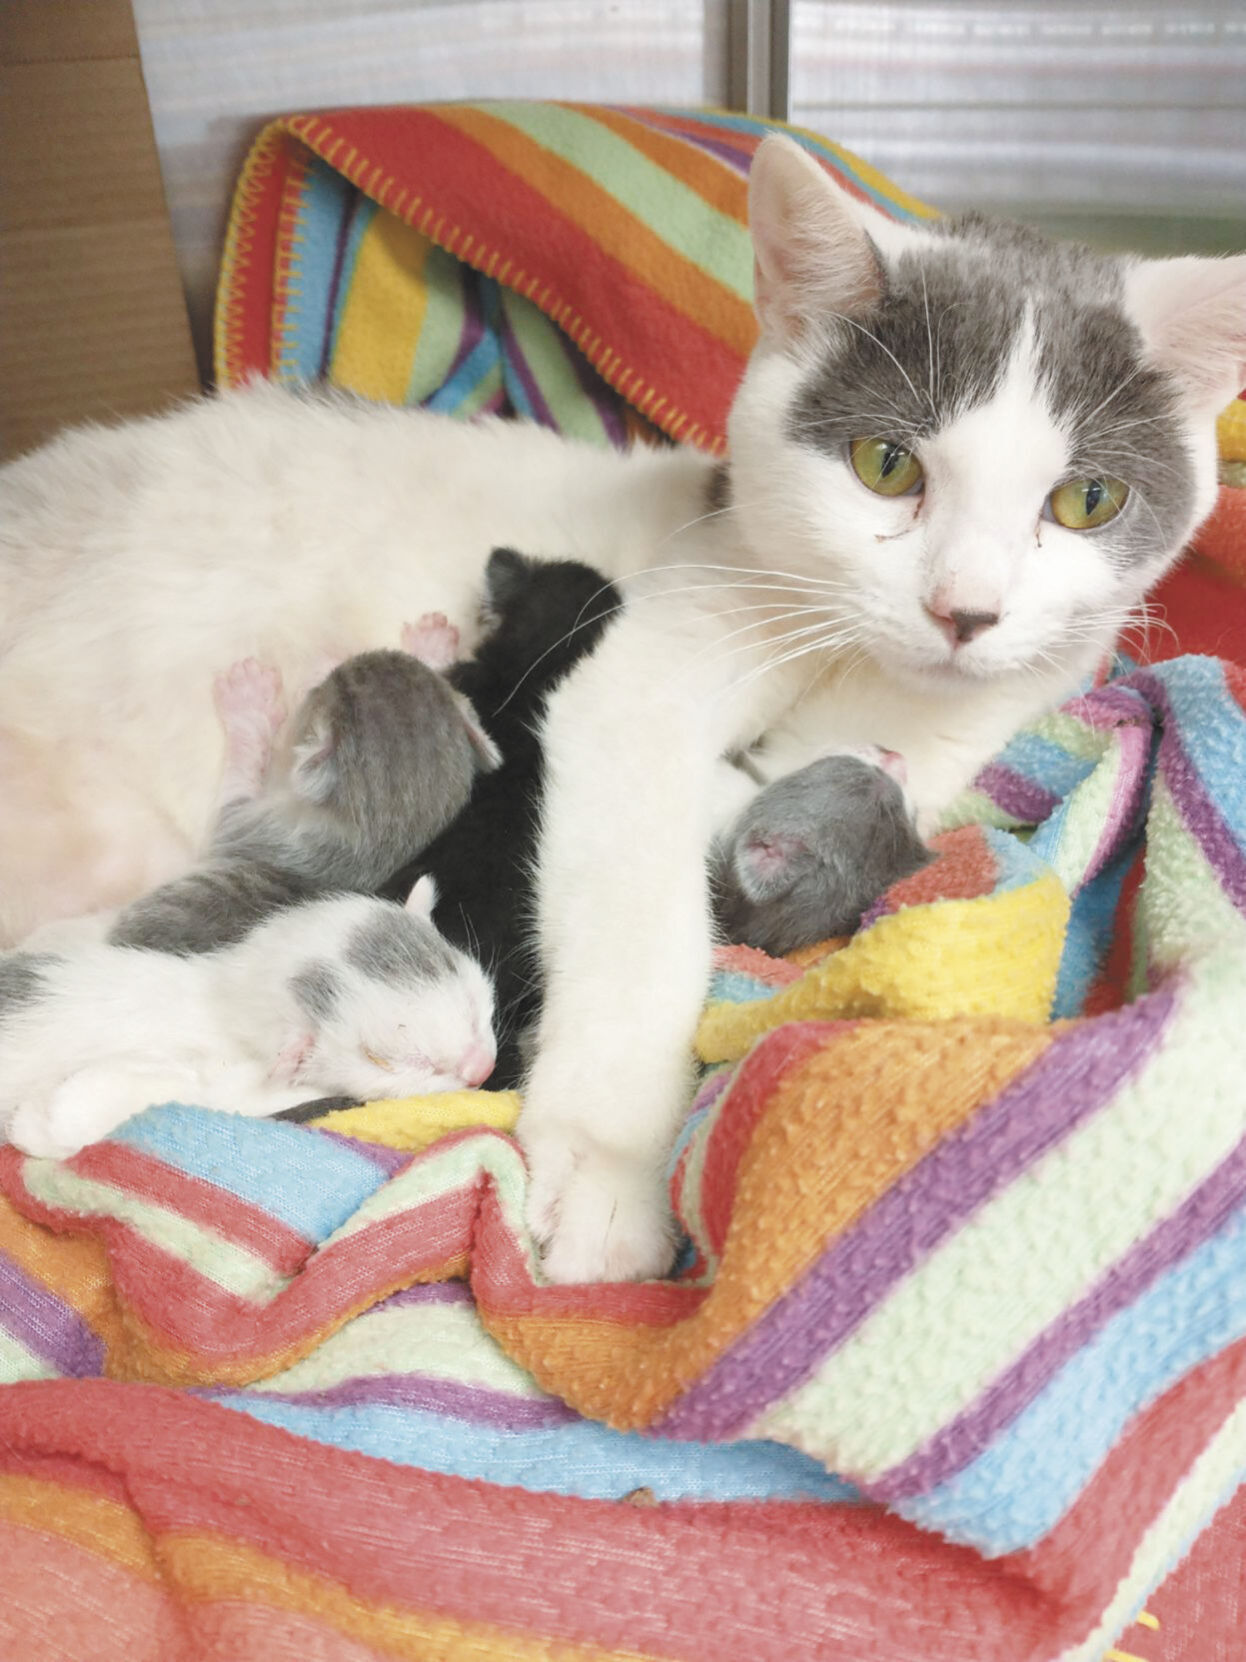 Rescued kittens and mom